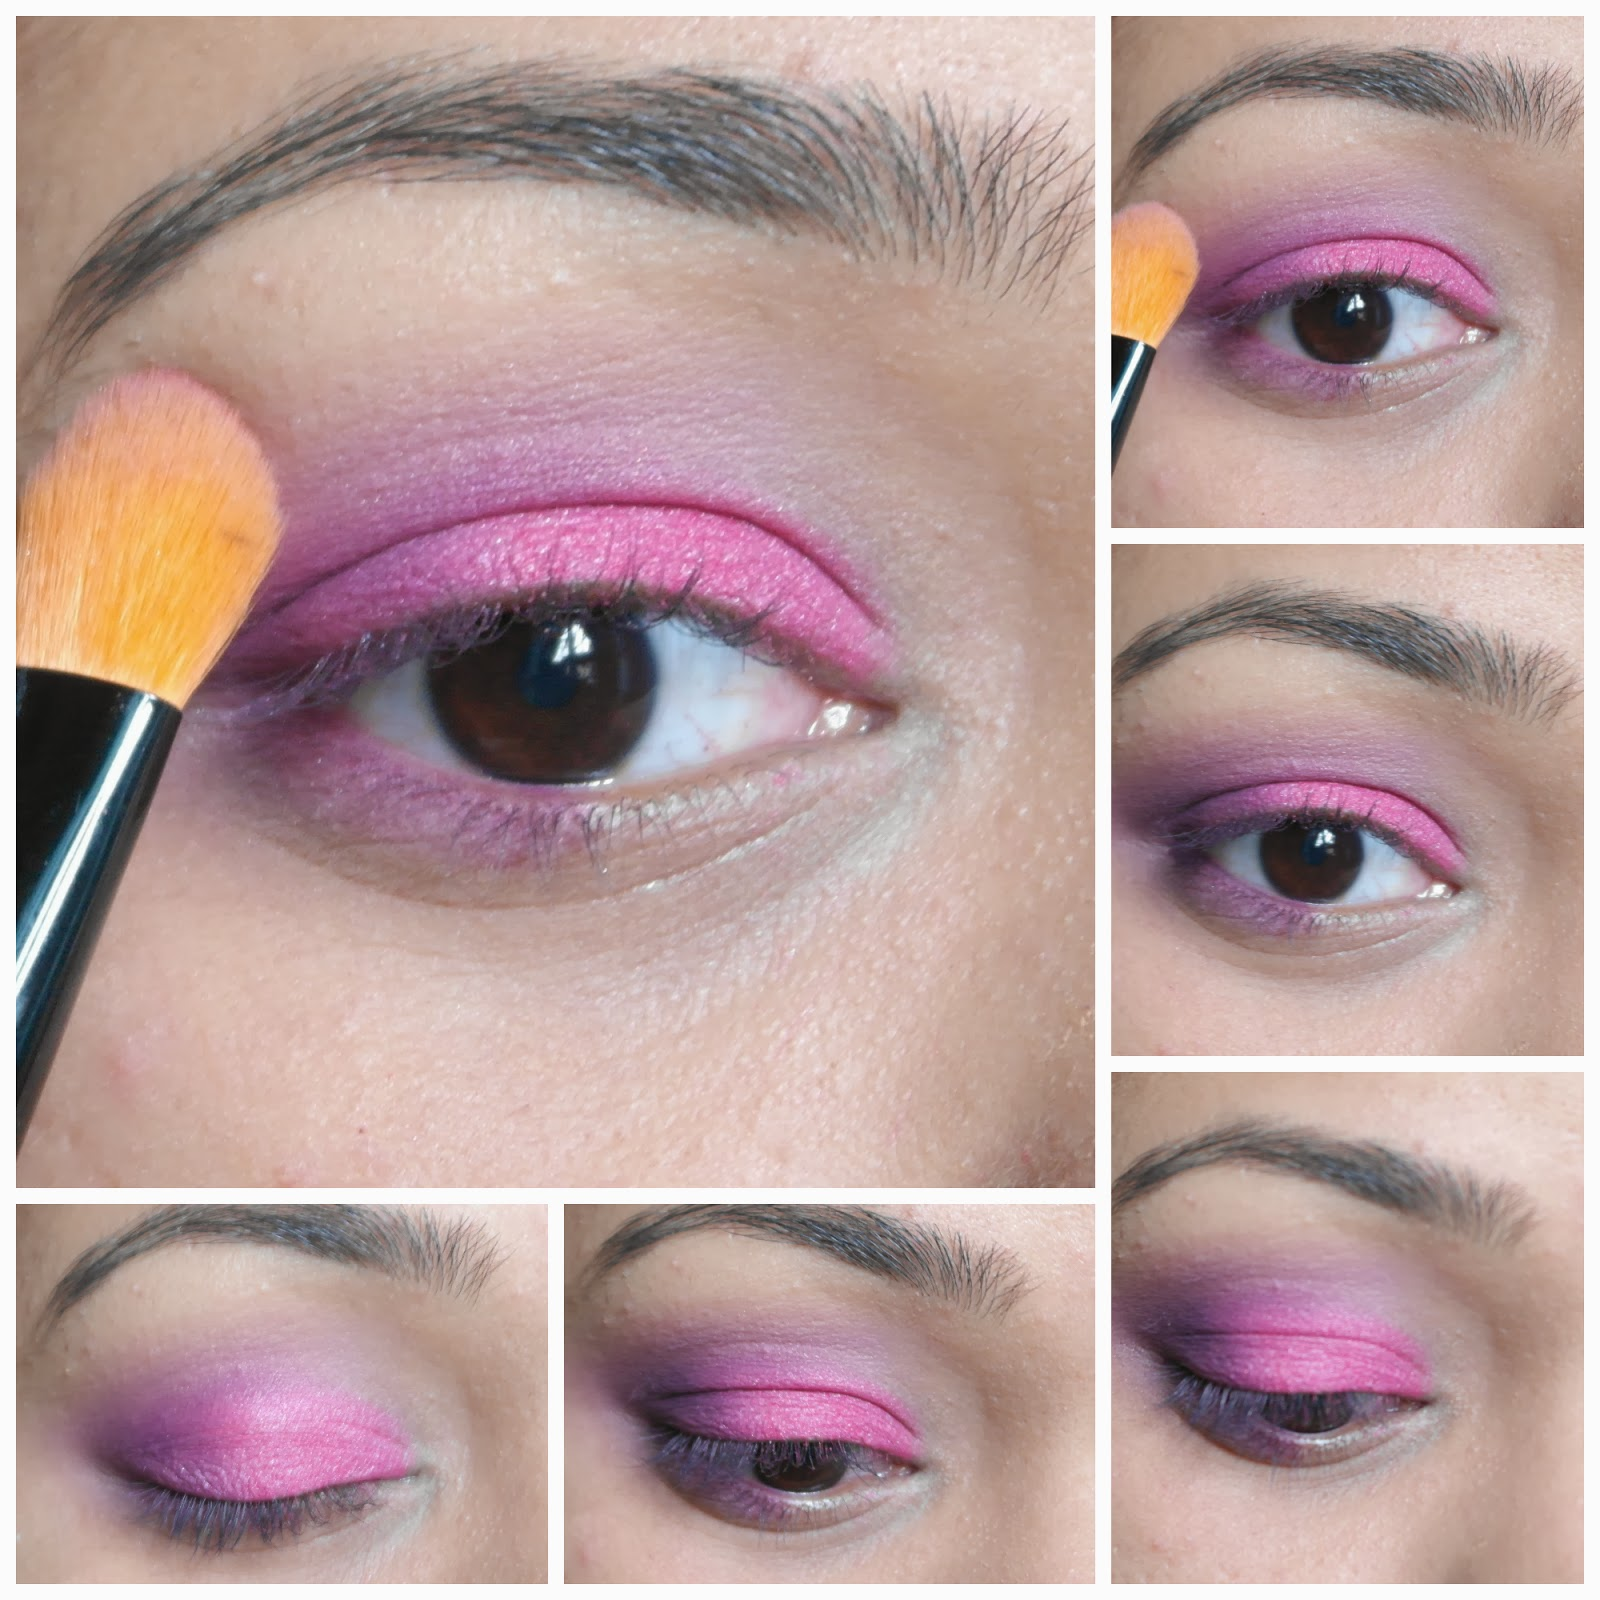 eyeshadow blending techniques-eyeshadow tutorial-pink purple eyeshadow tutorial